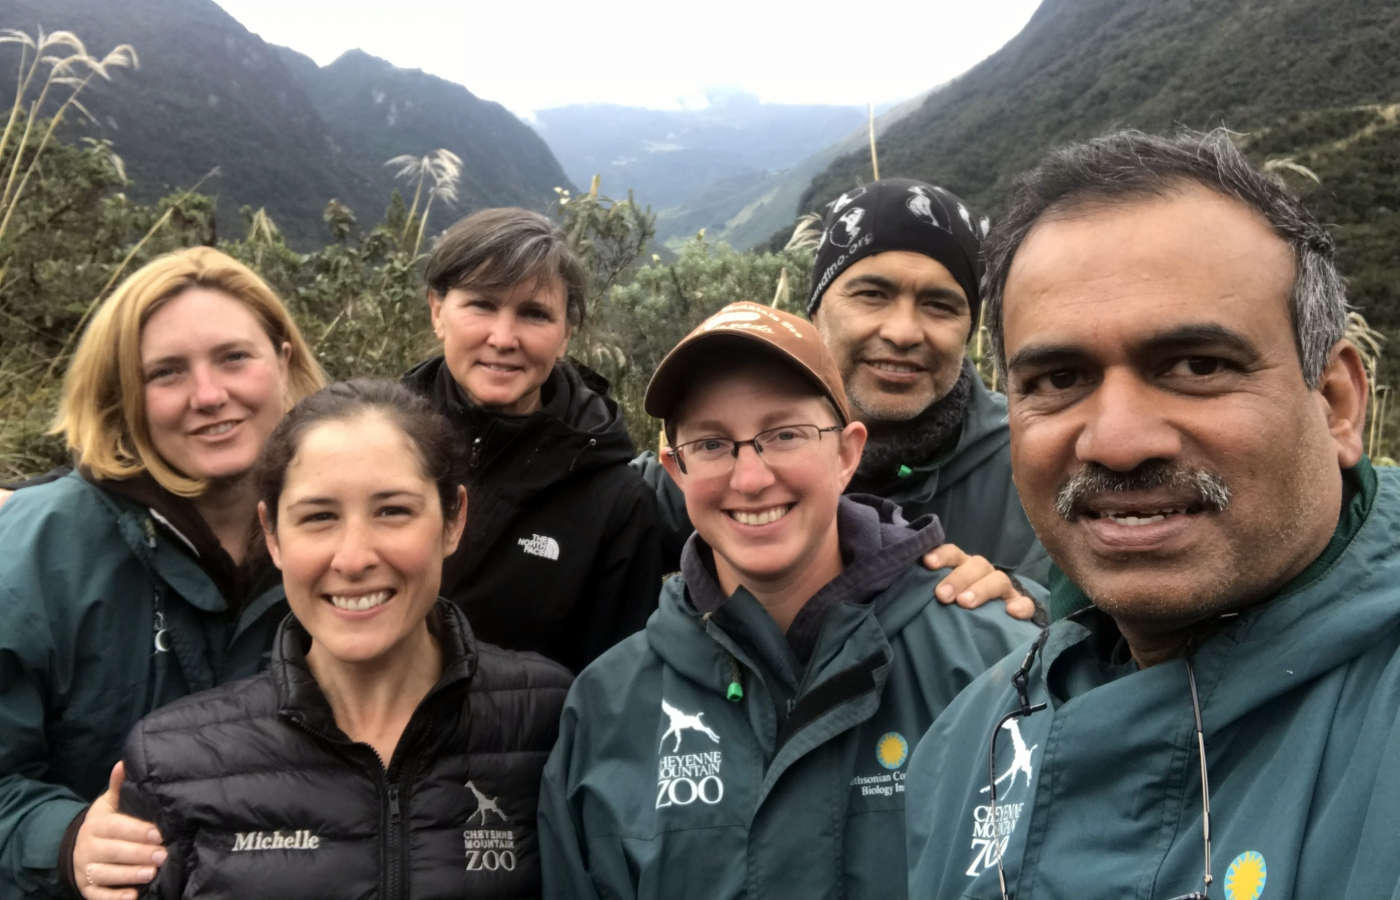 A group of six scientists pose for a photo in front of mountains during a tapir research expedition in Ecuador